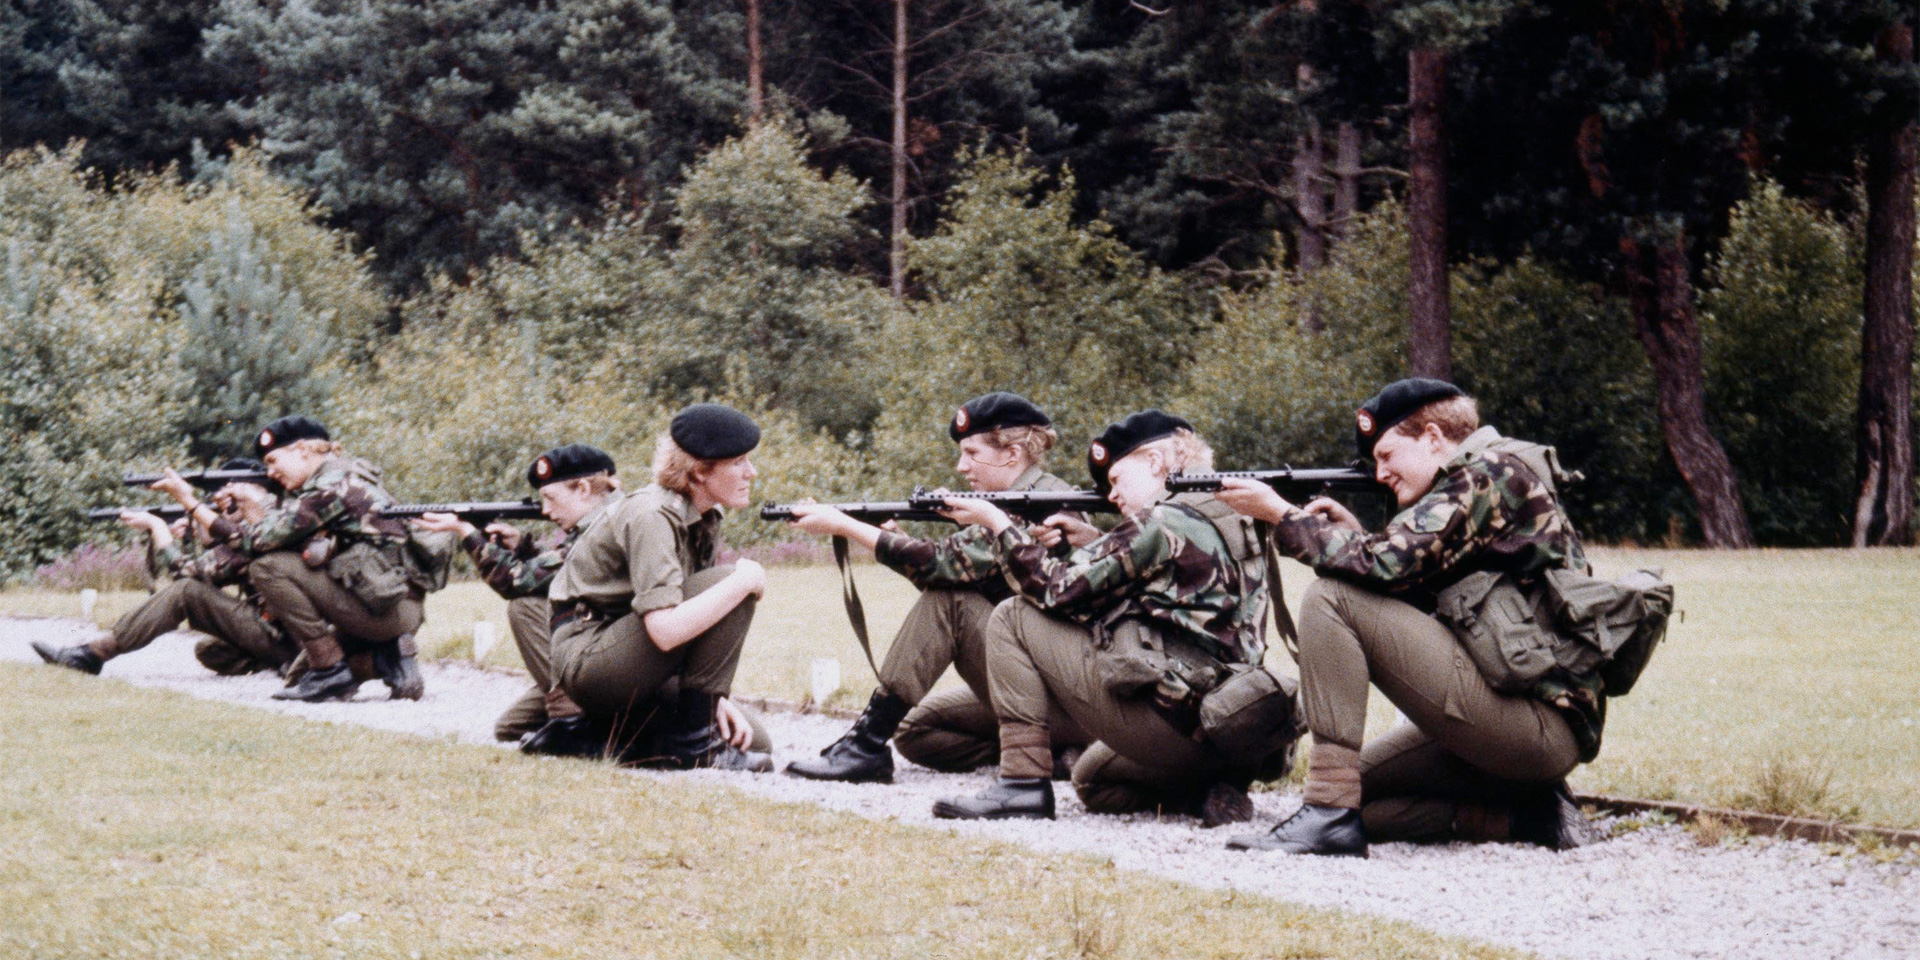 Skill at arms training, Women's Royal Army Corps, 1989